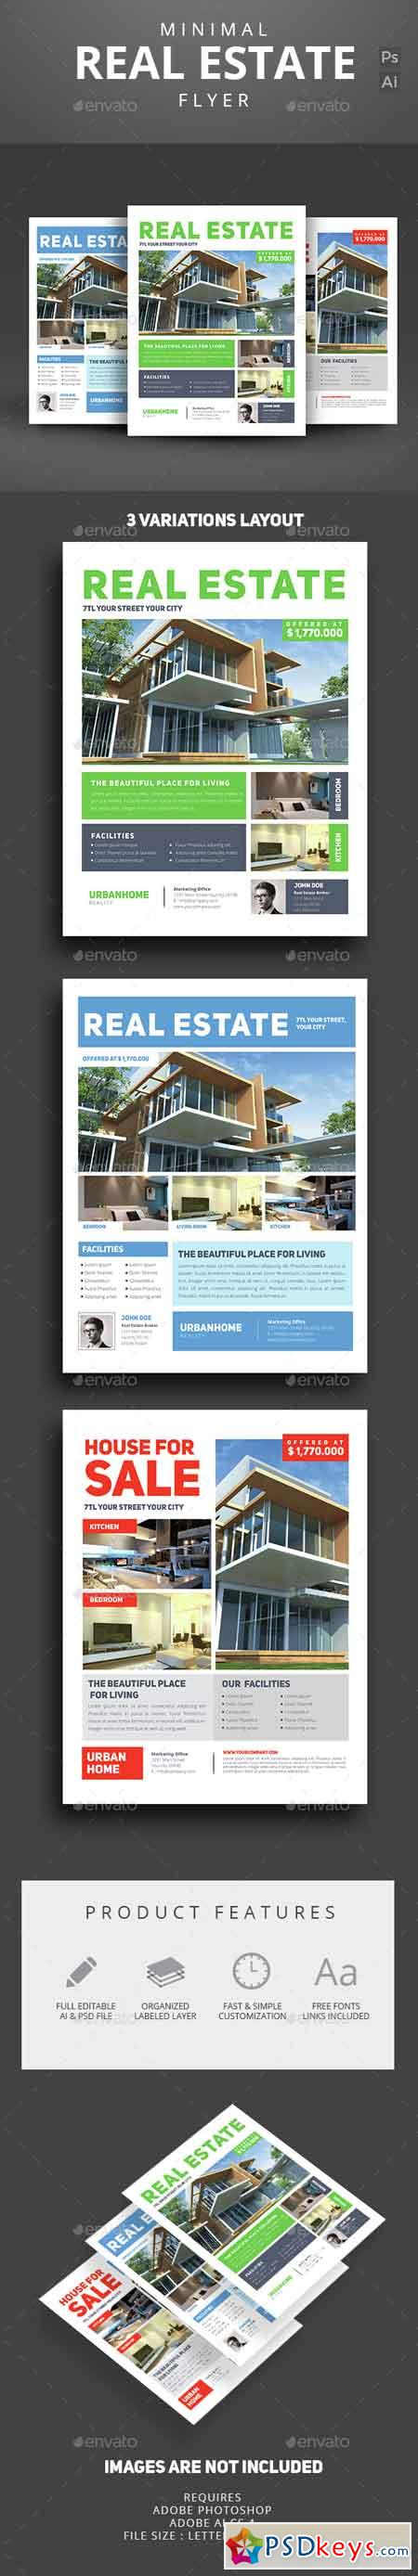 minimal real estate flyer 14614035 photoshop minimal real estate flyer 14614035